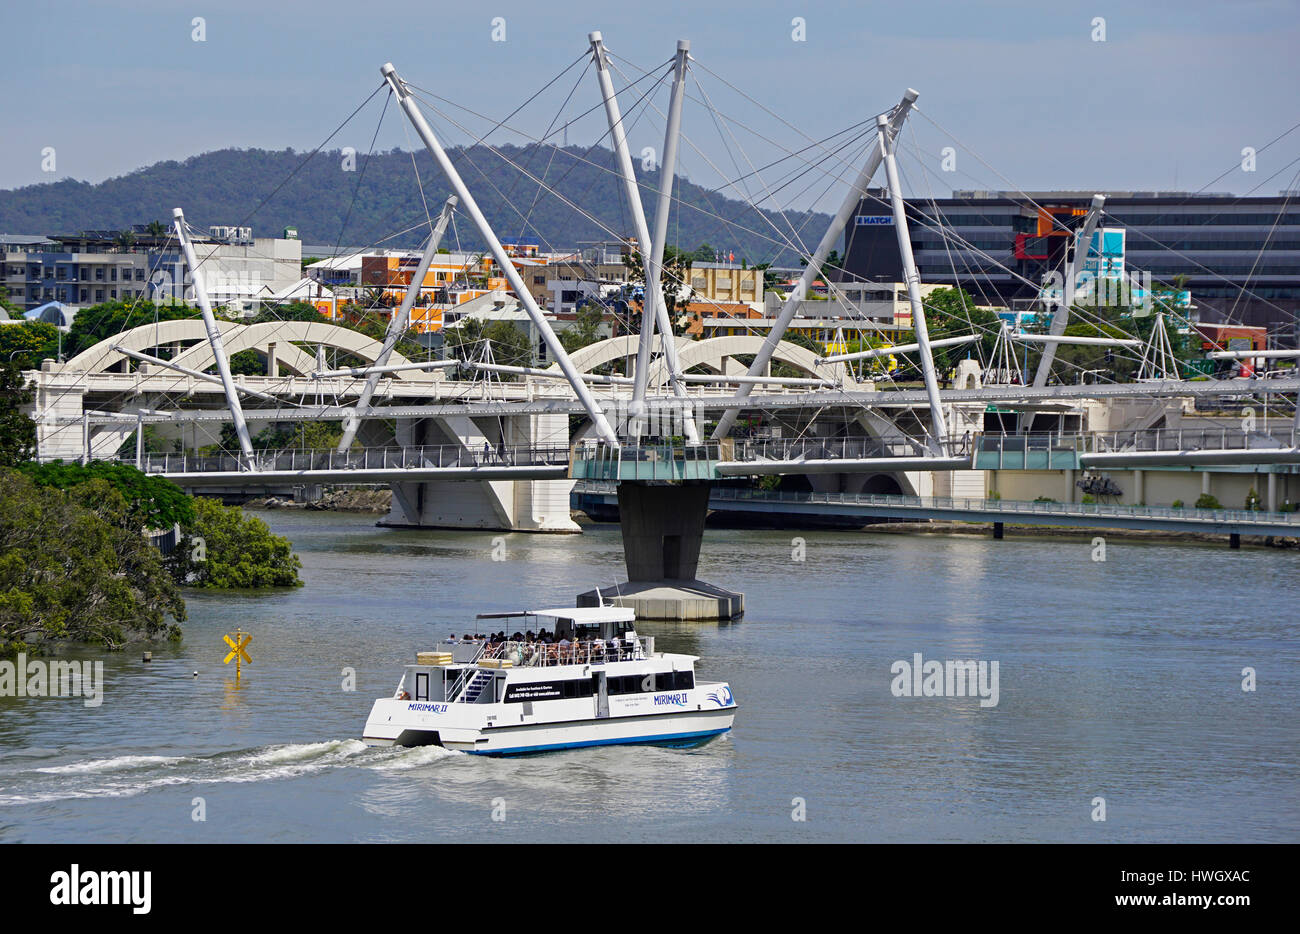 Harbor Bridge for pedestrians over Brisbane River, Brisbane, Queensland, Australia. - Stock Image